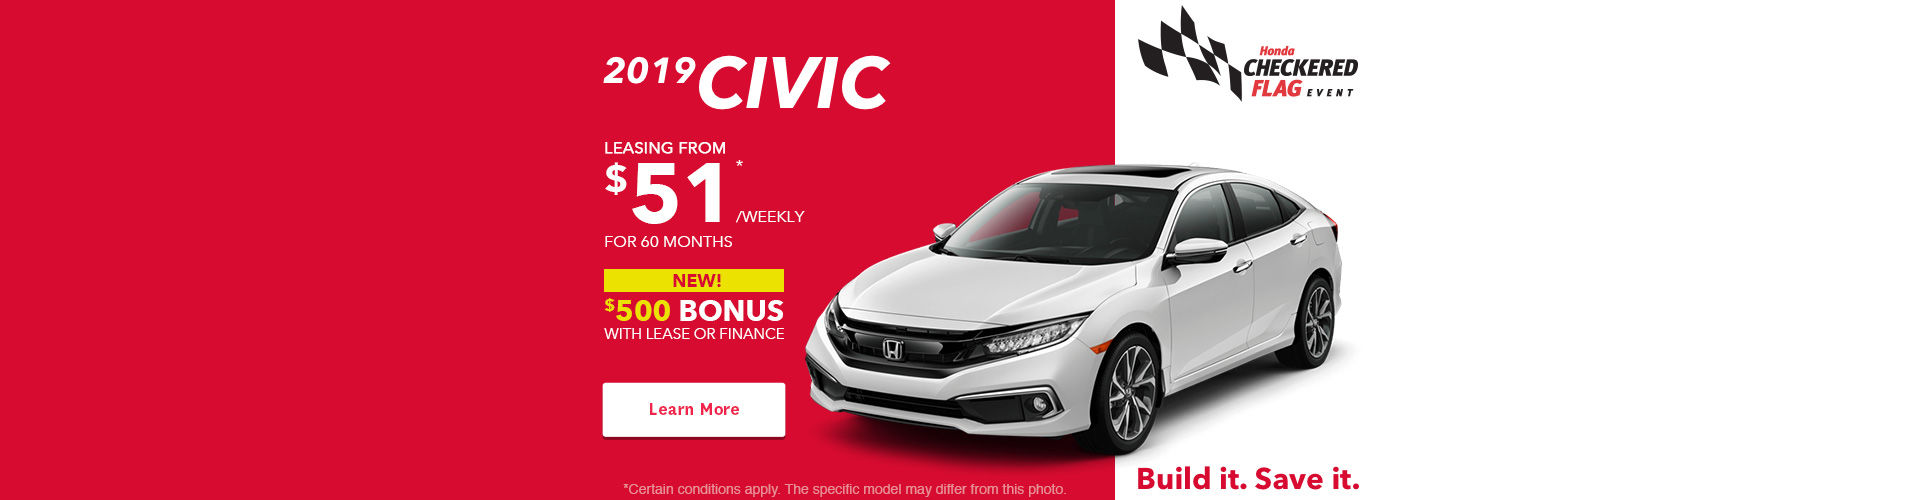 The 2019 Civic